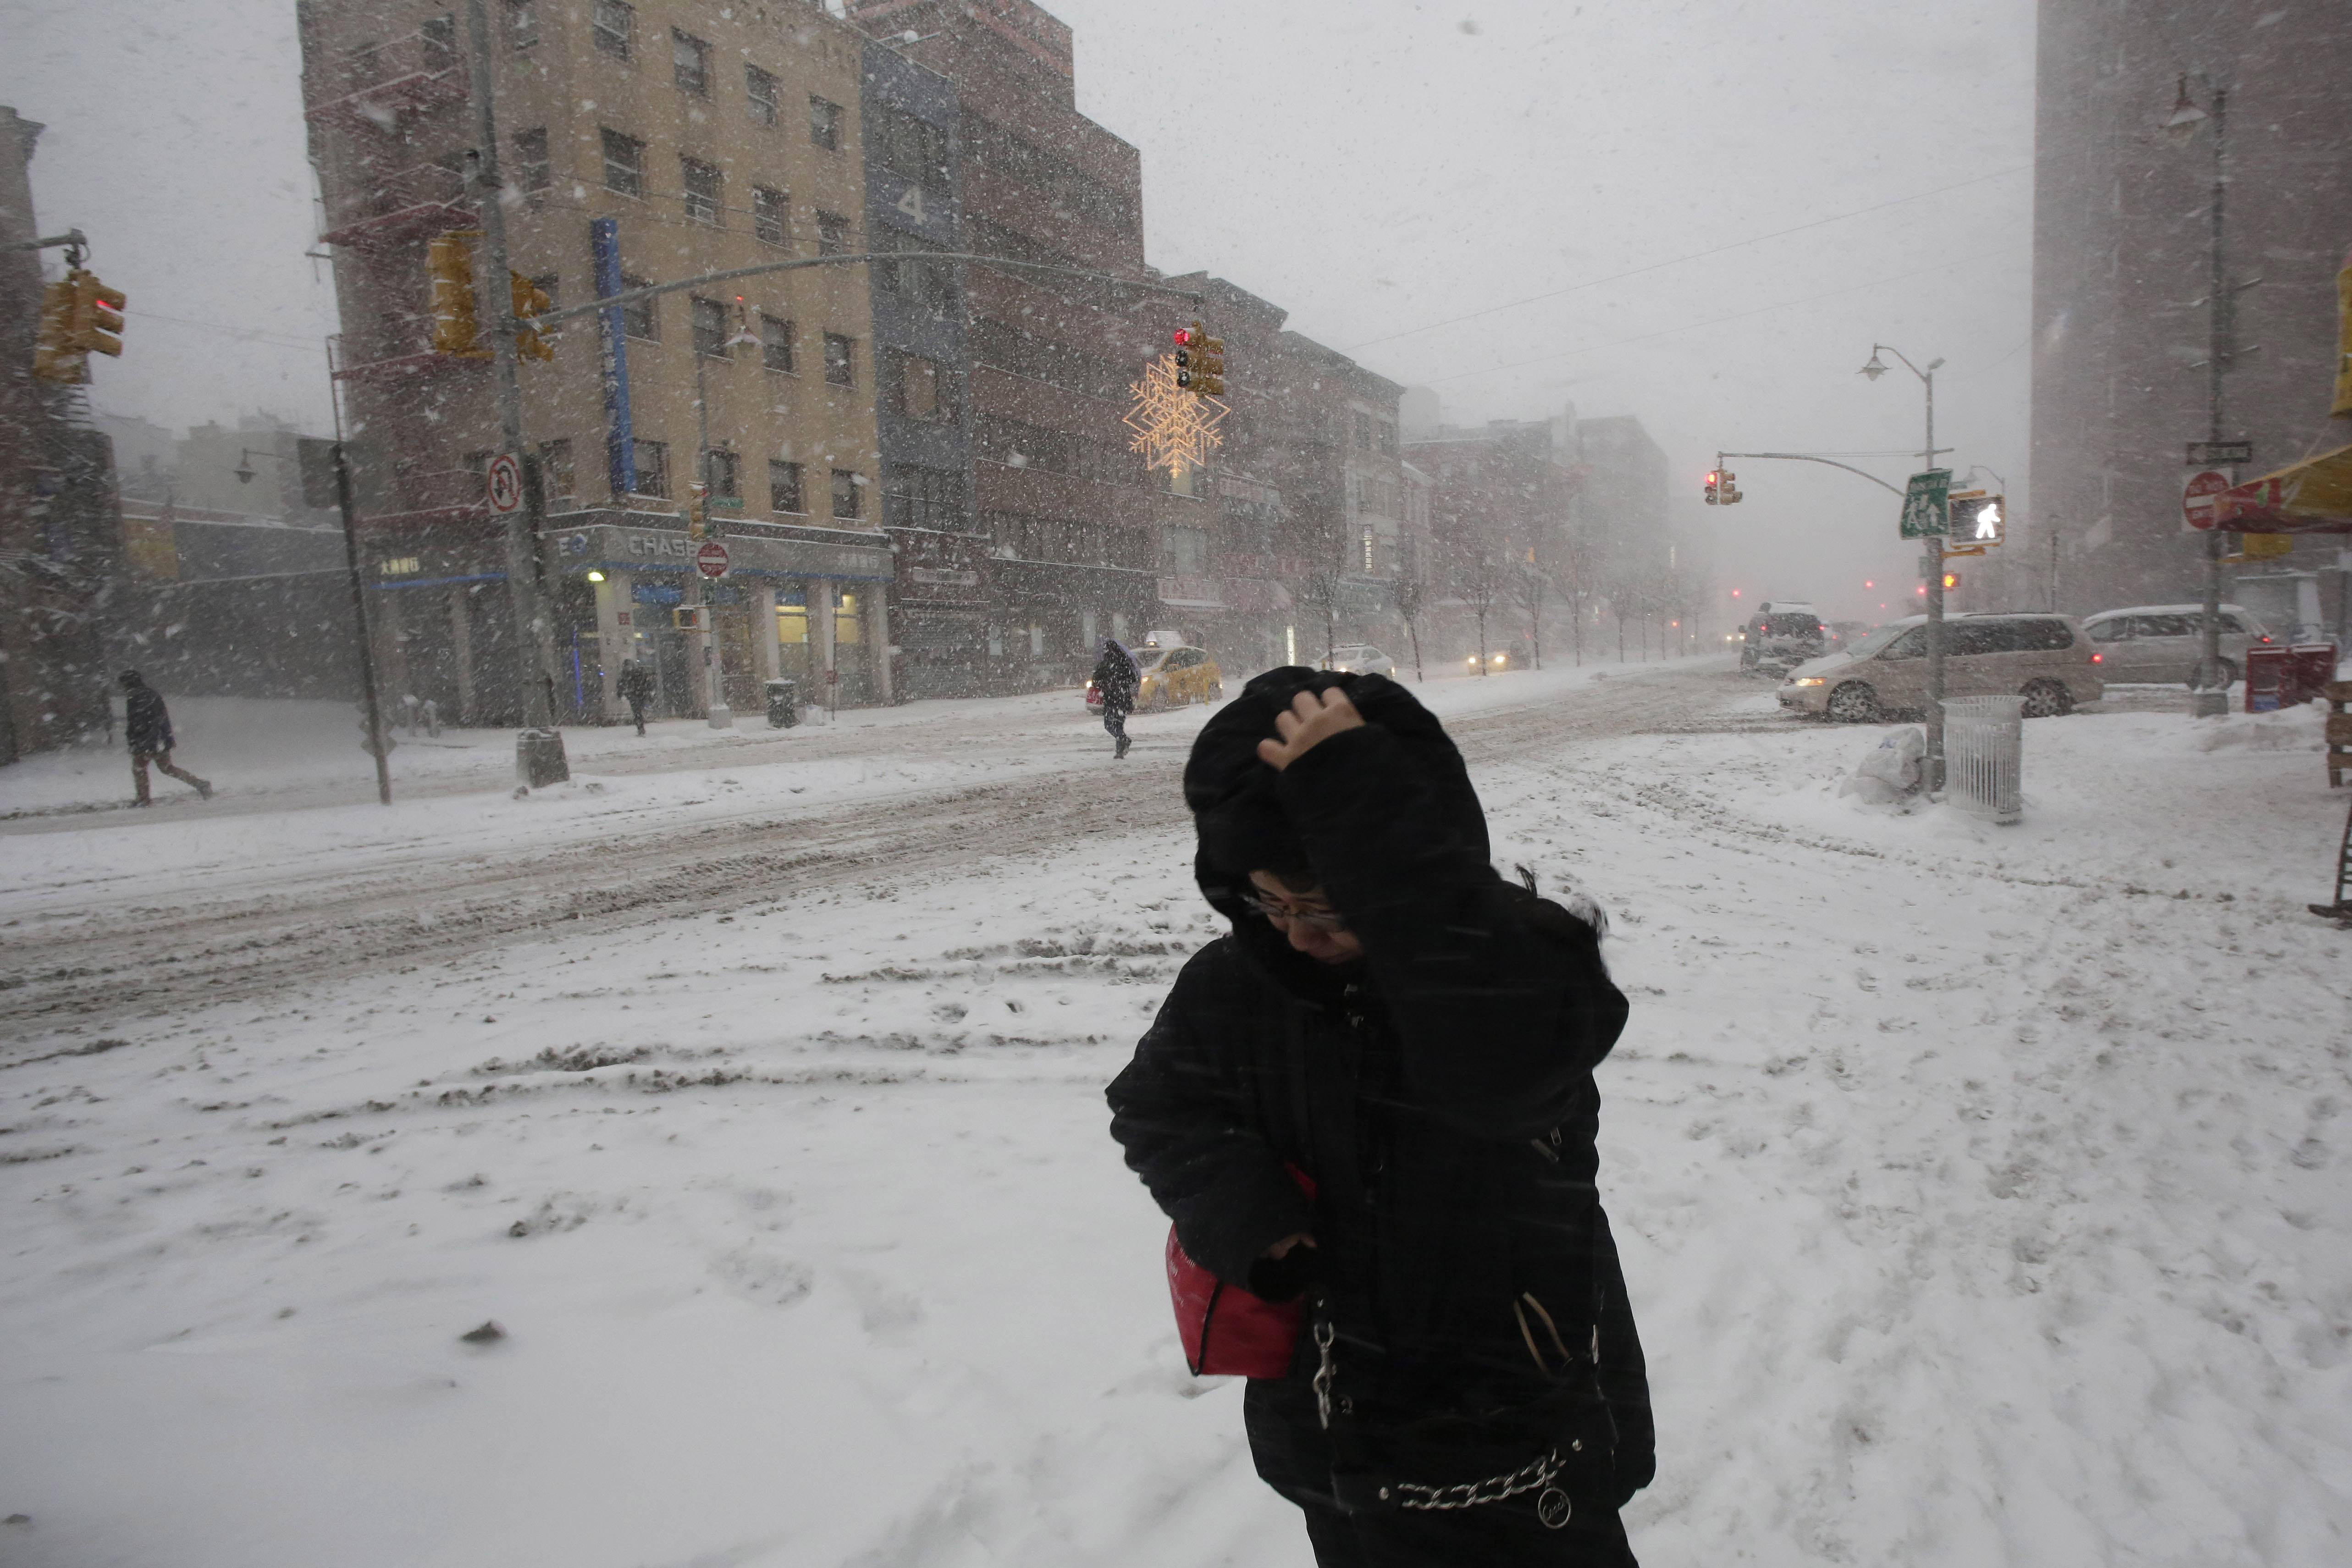 A woman walks through the snow in the Chinatown neighborhood of New York, Thursday, Feb. 13, 2014. Snow and sleet are falling on the East Coast, from North Carolina to New England, a day after sleet, snow and ice bombarded the Southeast.